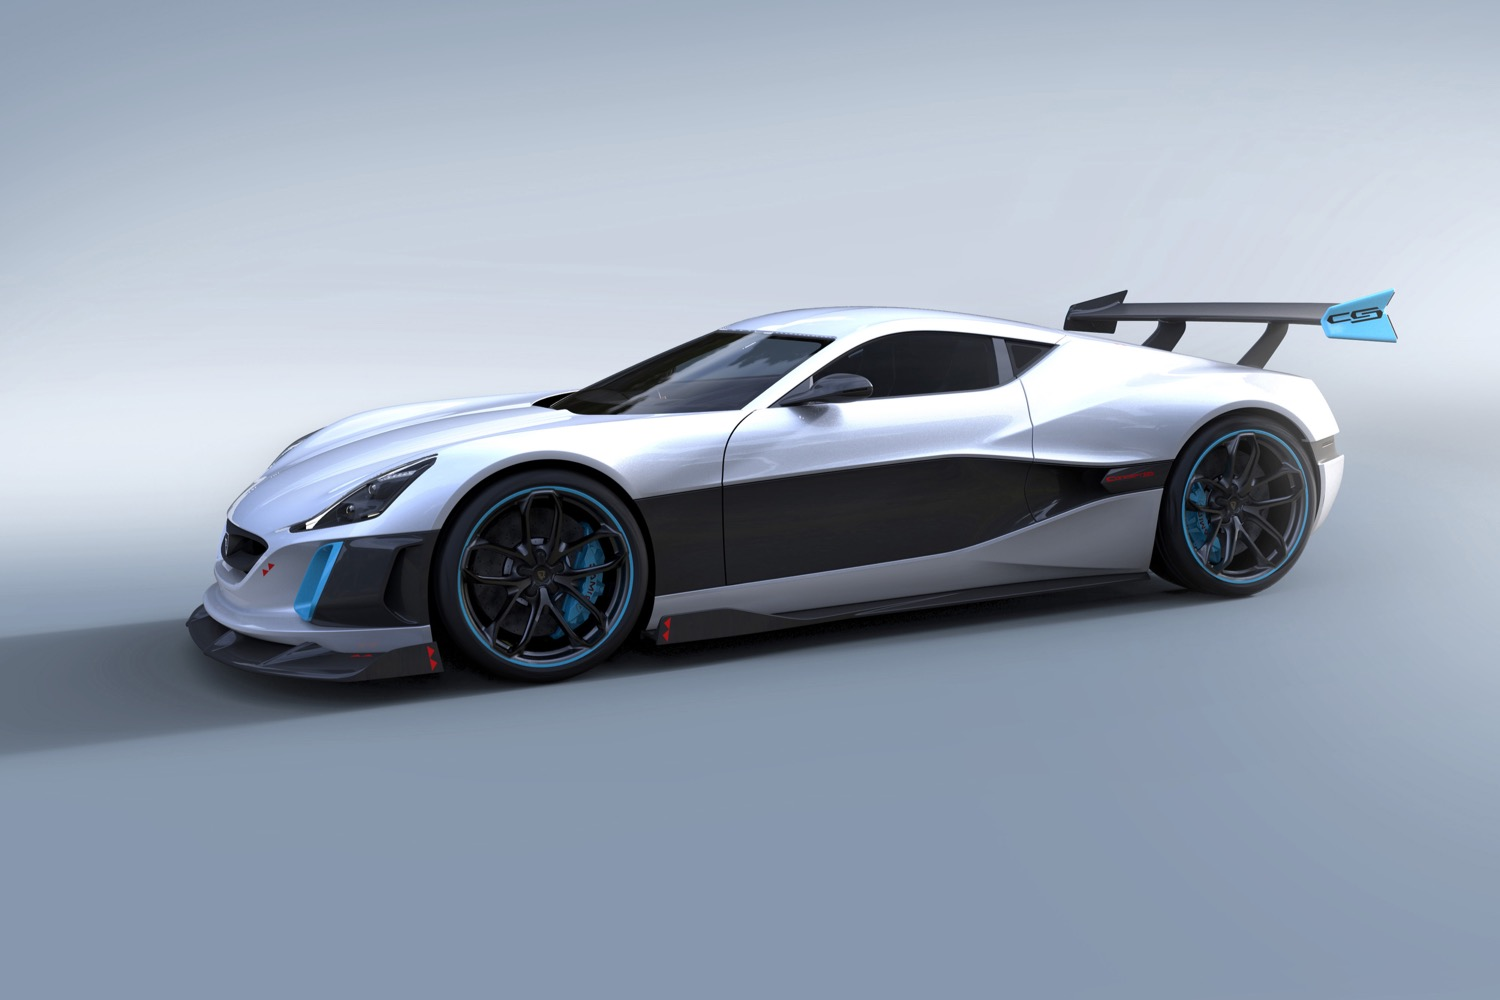 Rimac Ups Power Cuts Weight With Concept S Electric